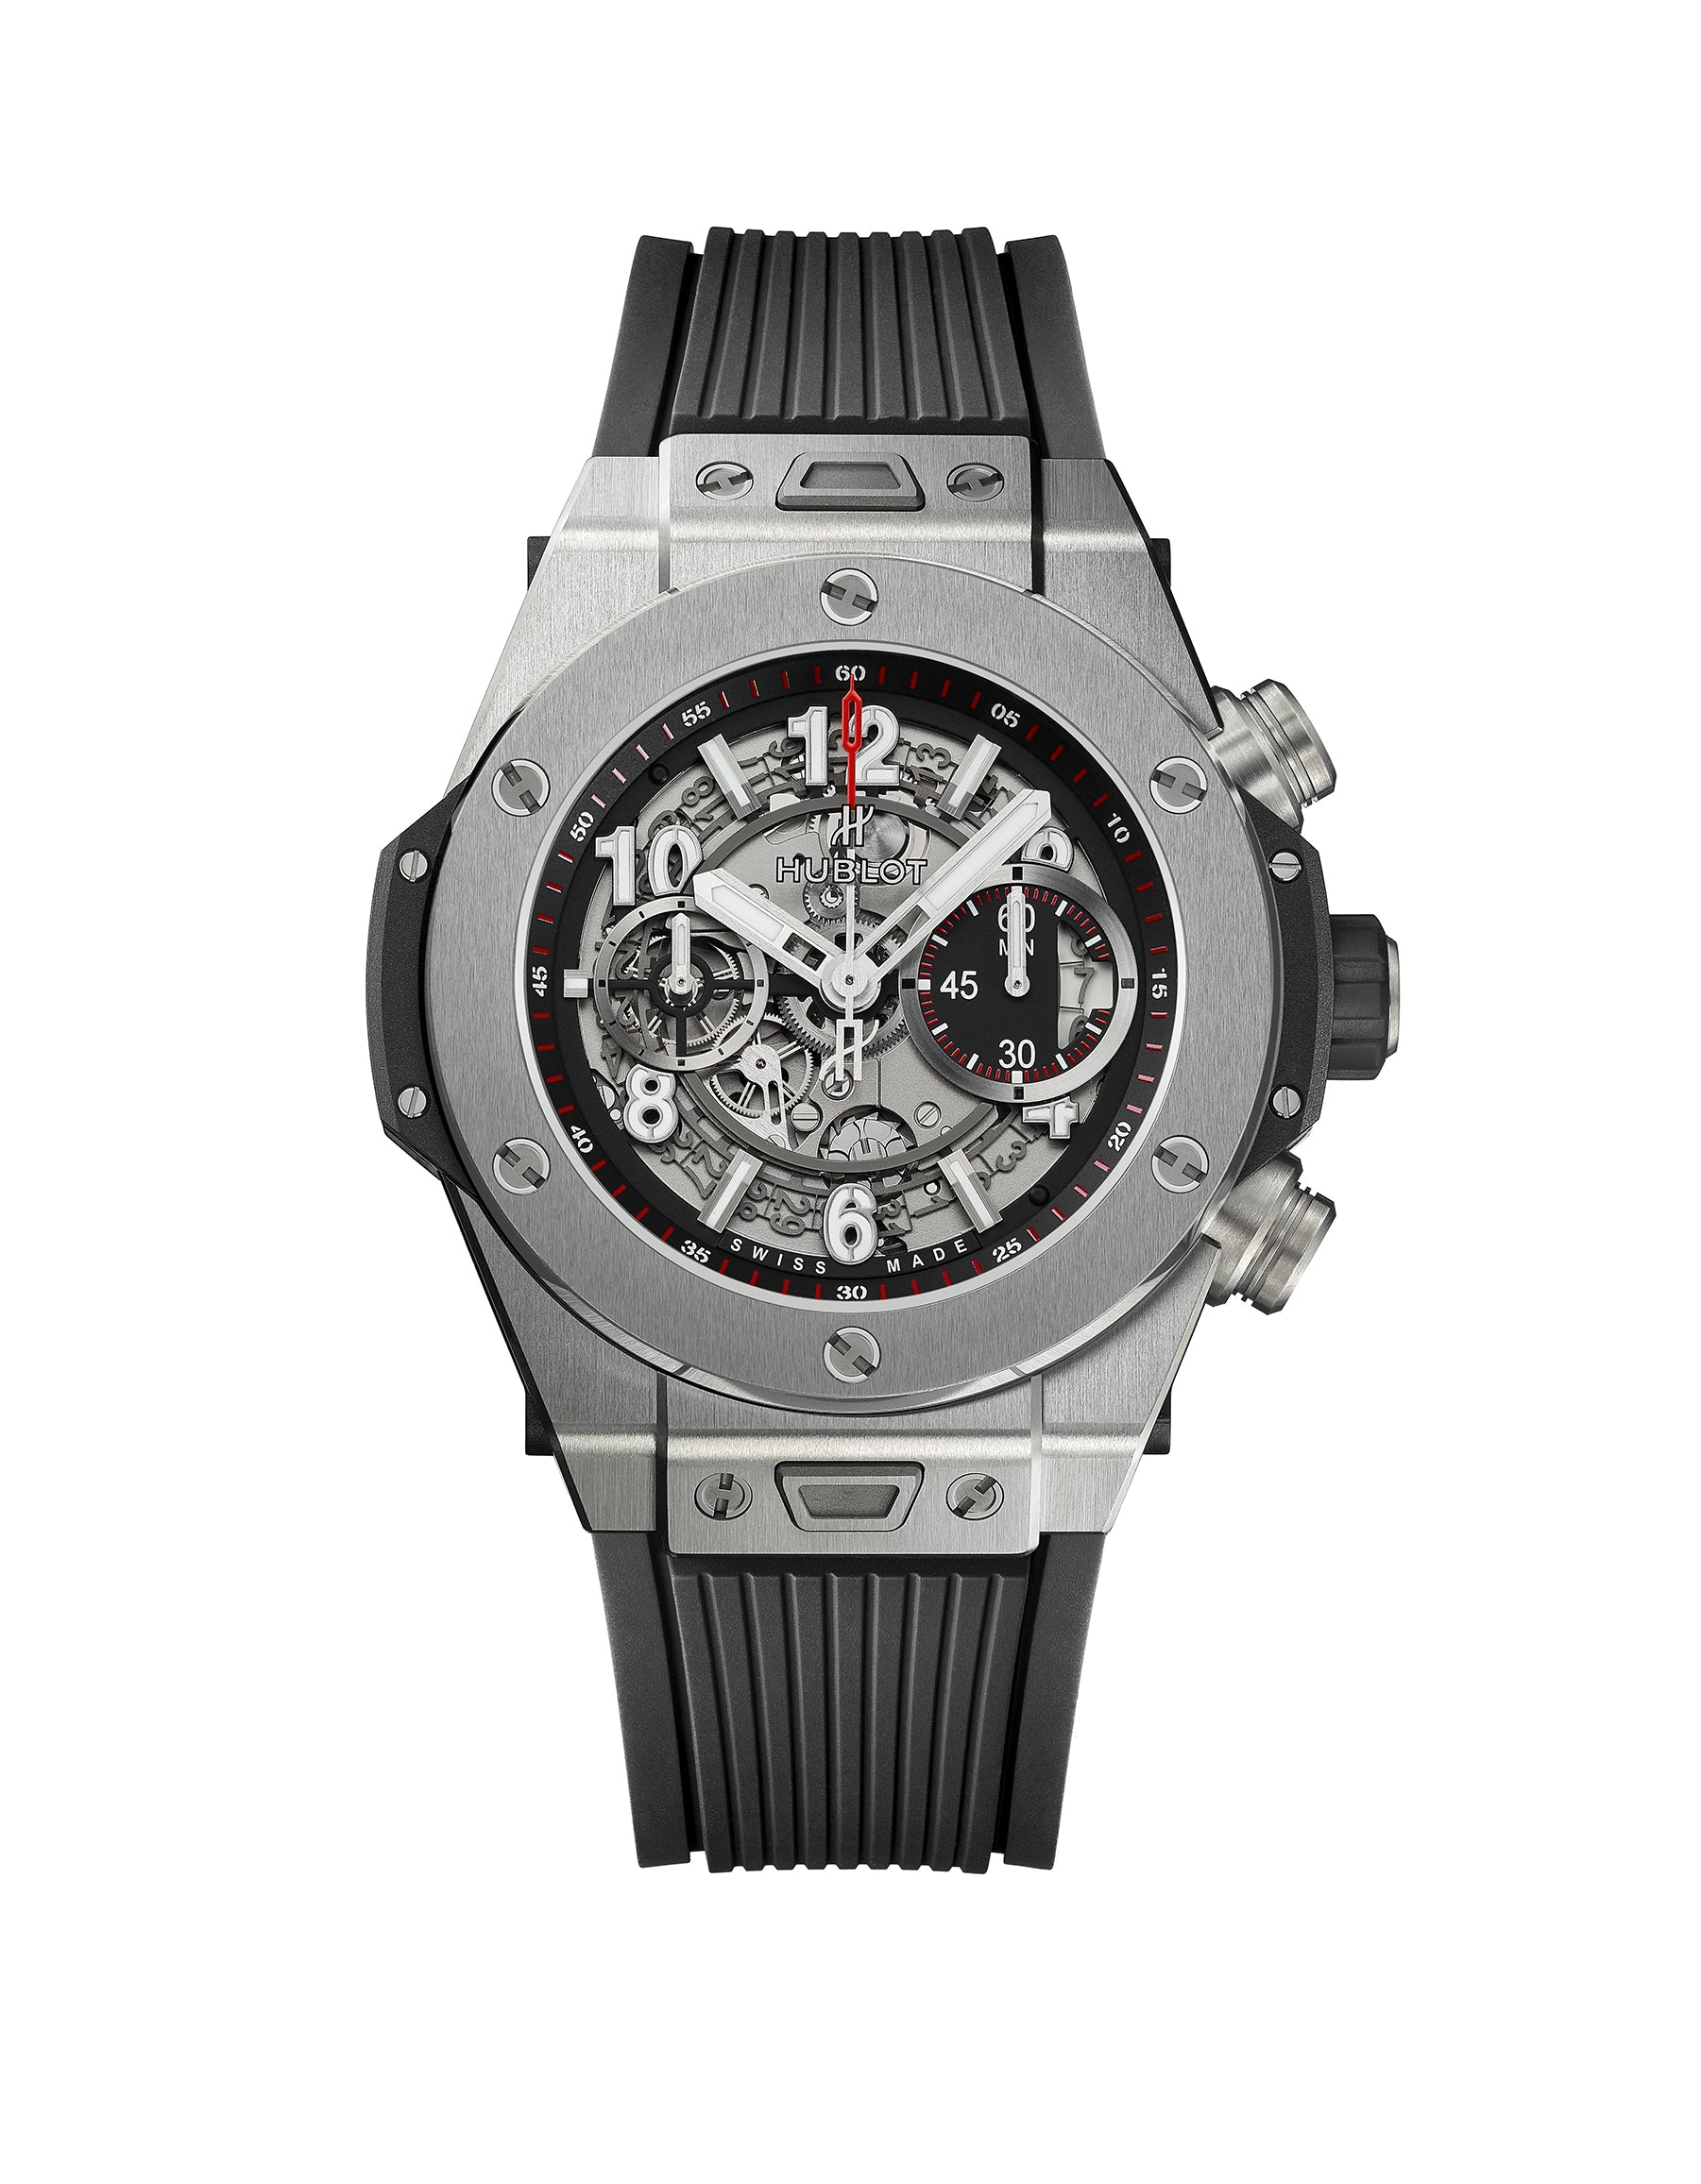 Big Bang Unico Titanium